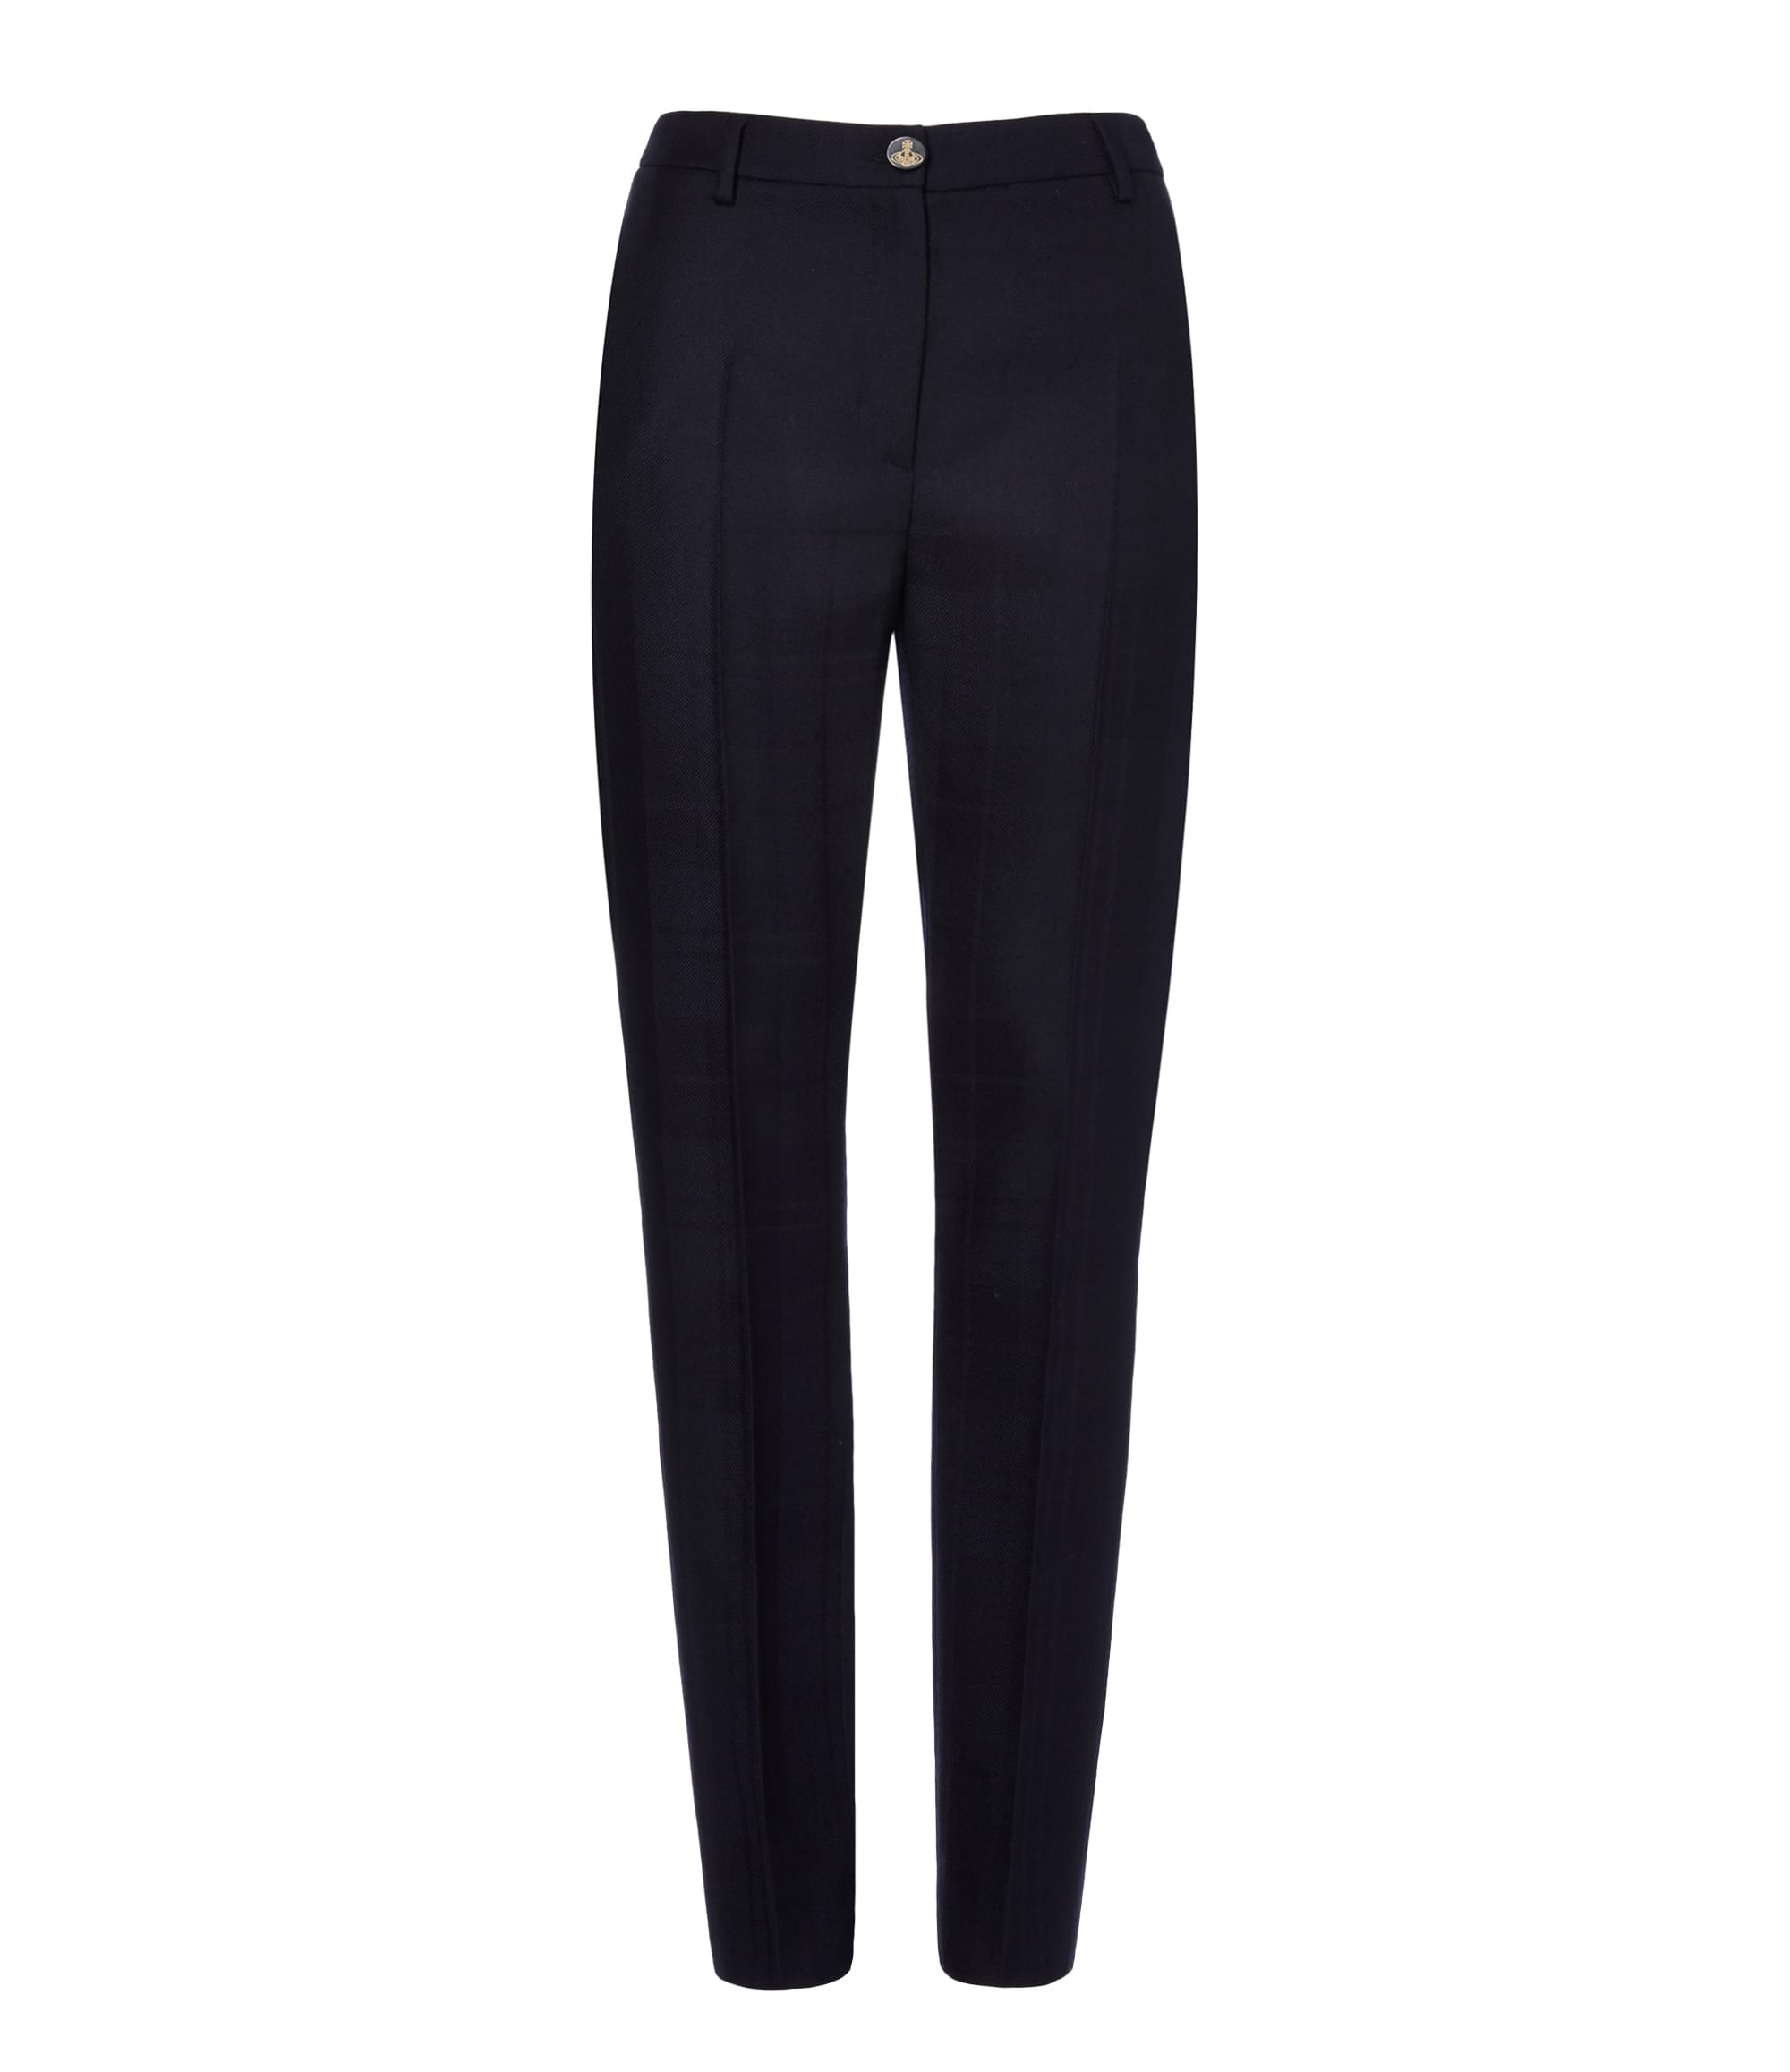 Vivienne Westwood Navy Tuxedo Trousers